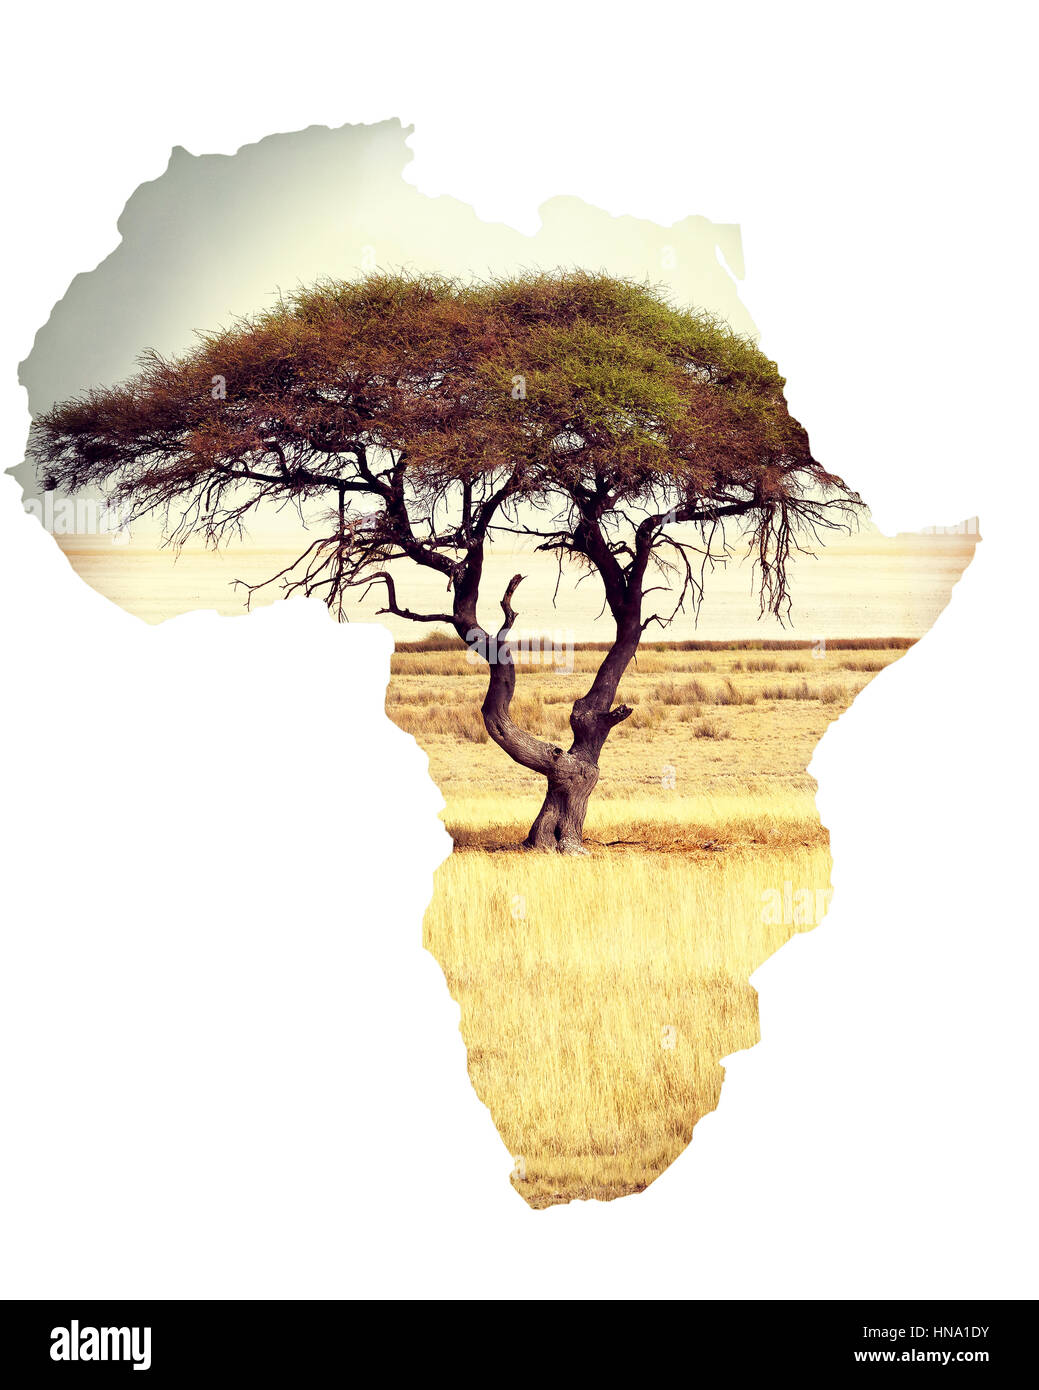 Plain Africa Map.Typical Large Acacia Tree In The Open Savanna Plains Of East Africa